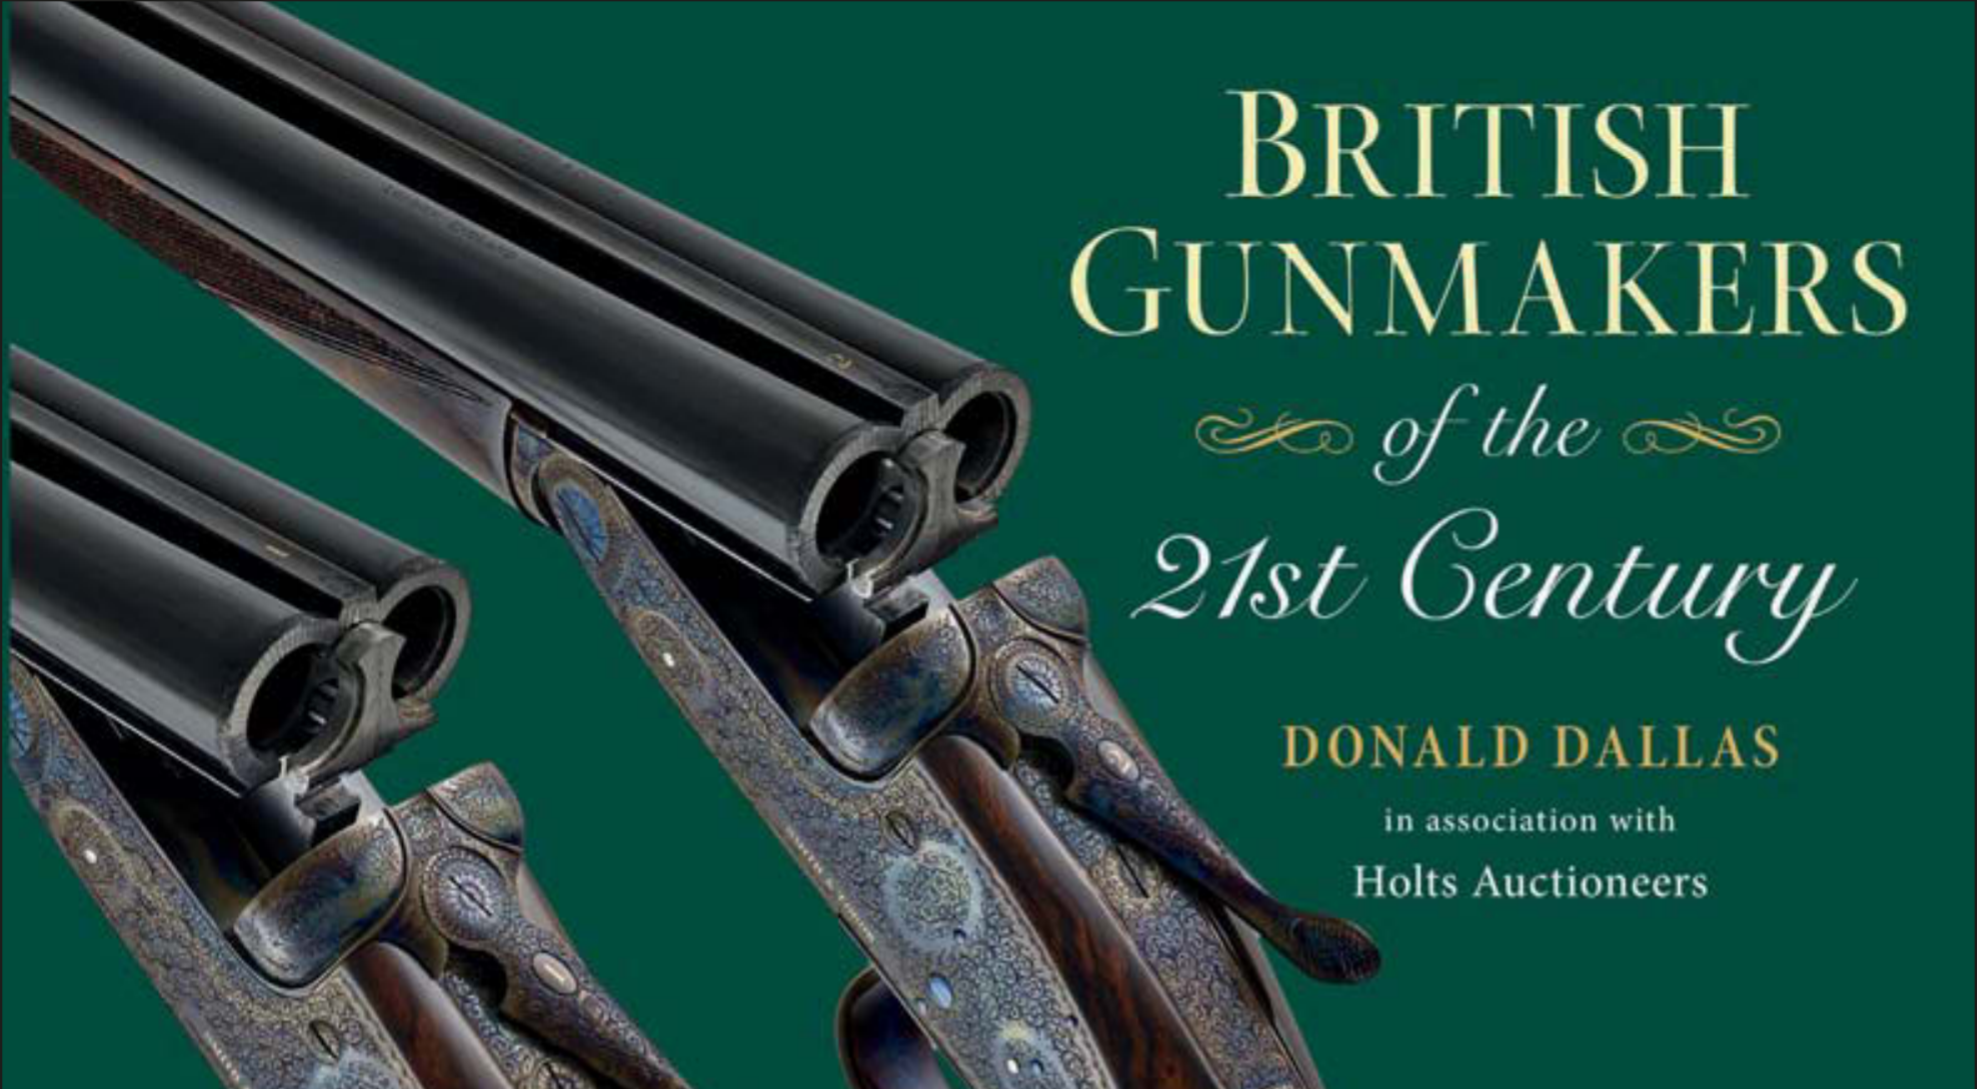 Huge Demand Increase for Antique Firearms at Holt's Auctions